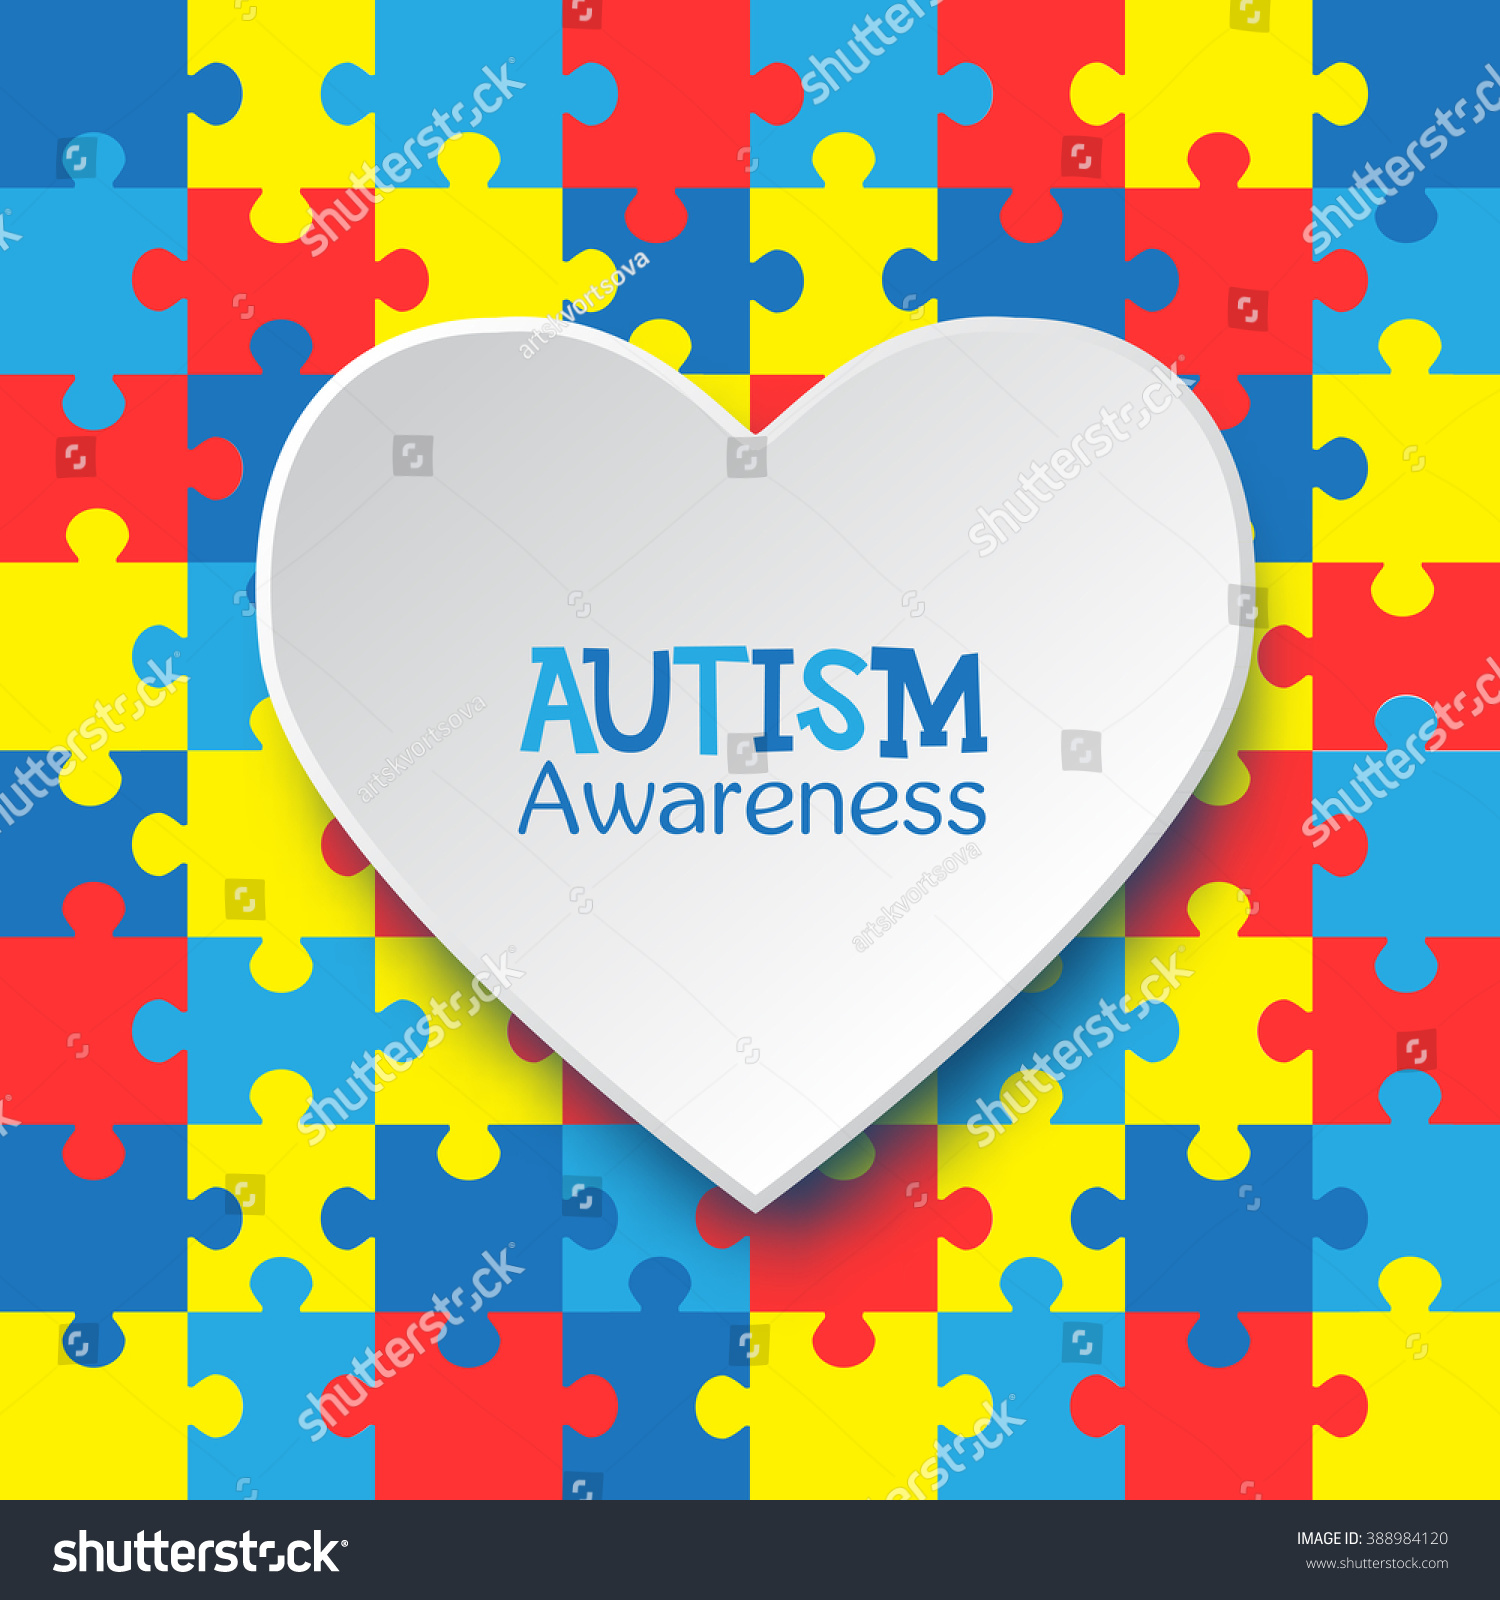 World autism awareness day colorful puzzles stock vector 388984120 world autism awareness day colorful puzzles vector background with heart symbol of autism biocorpaavc